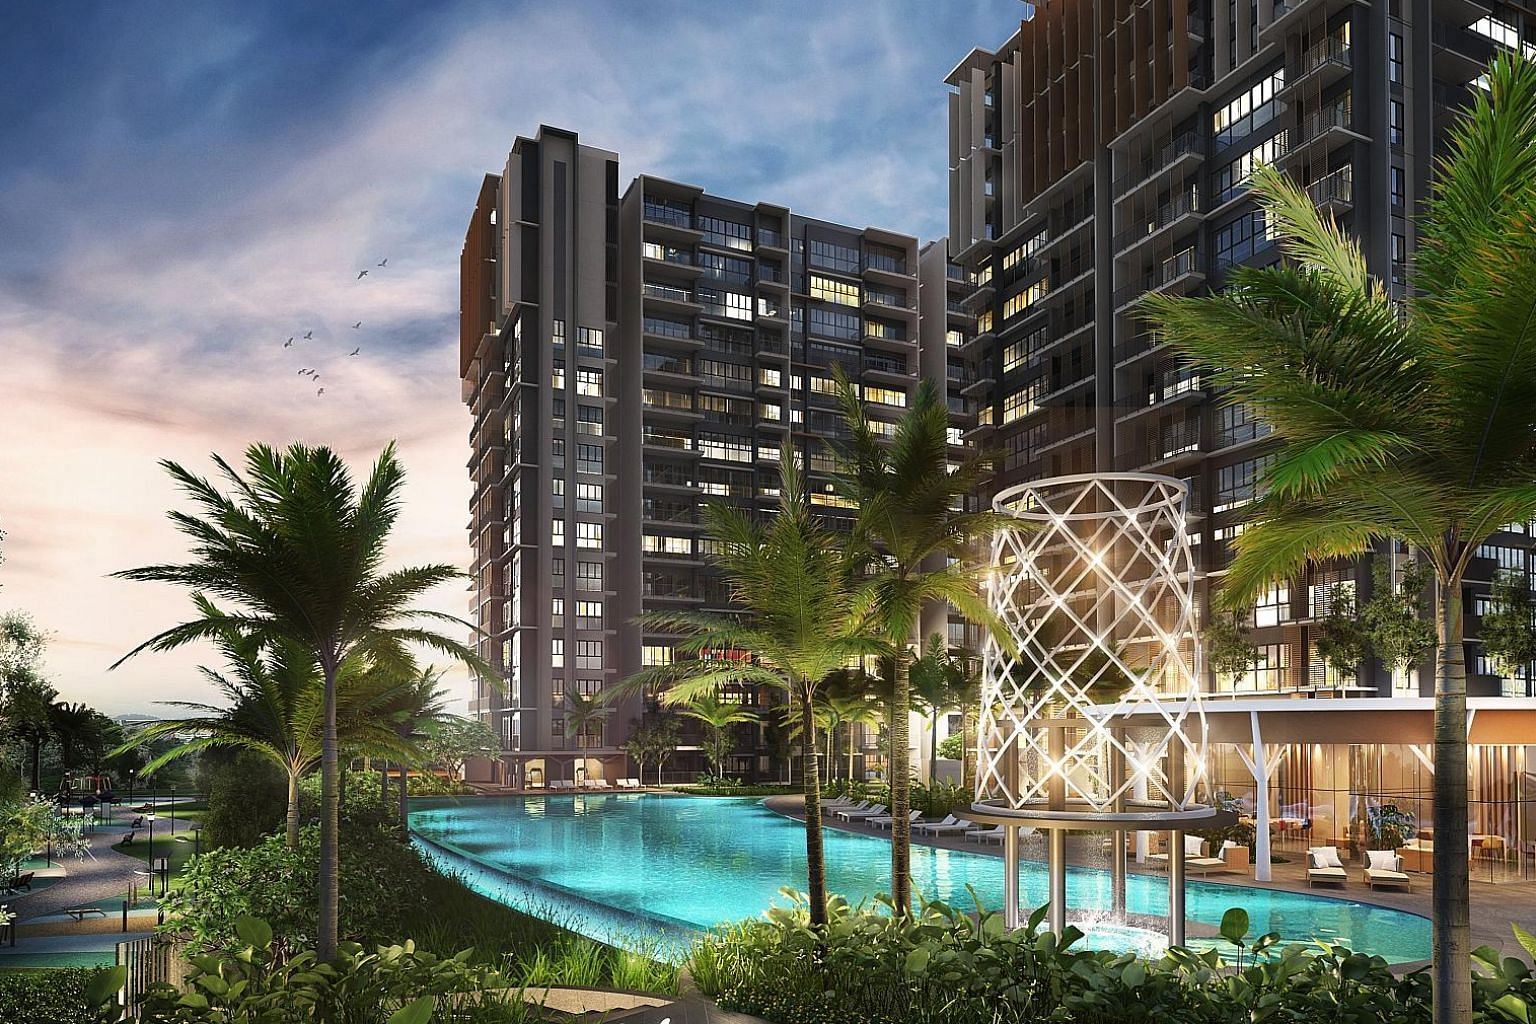 An artist's impression of executive condo Parc Life, which sold 48 units.